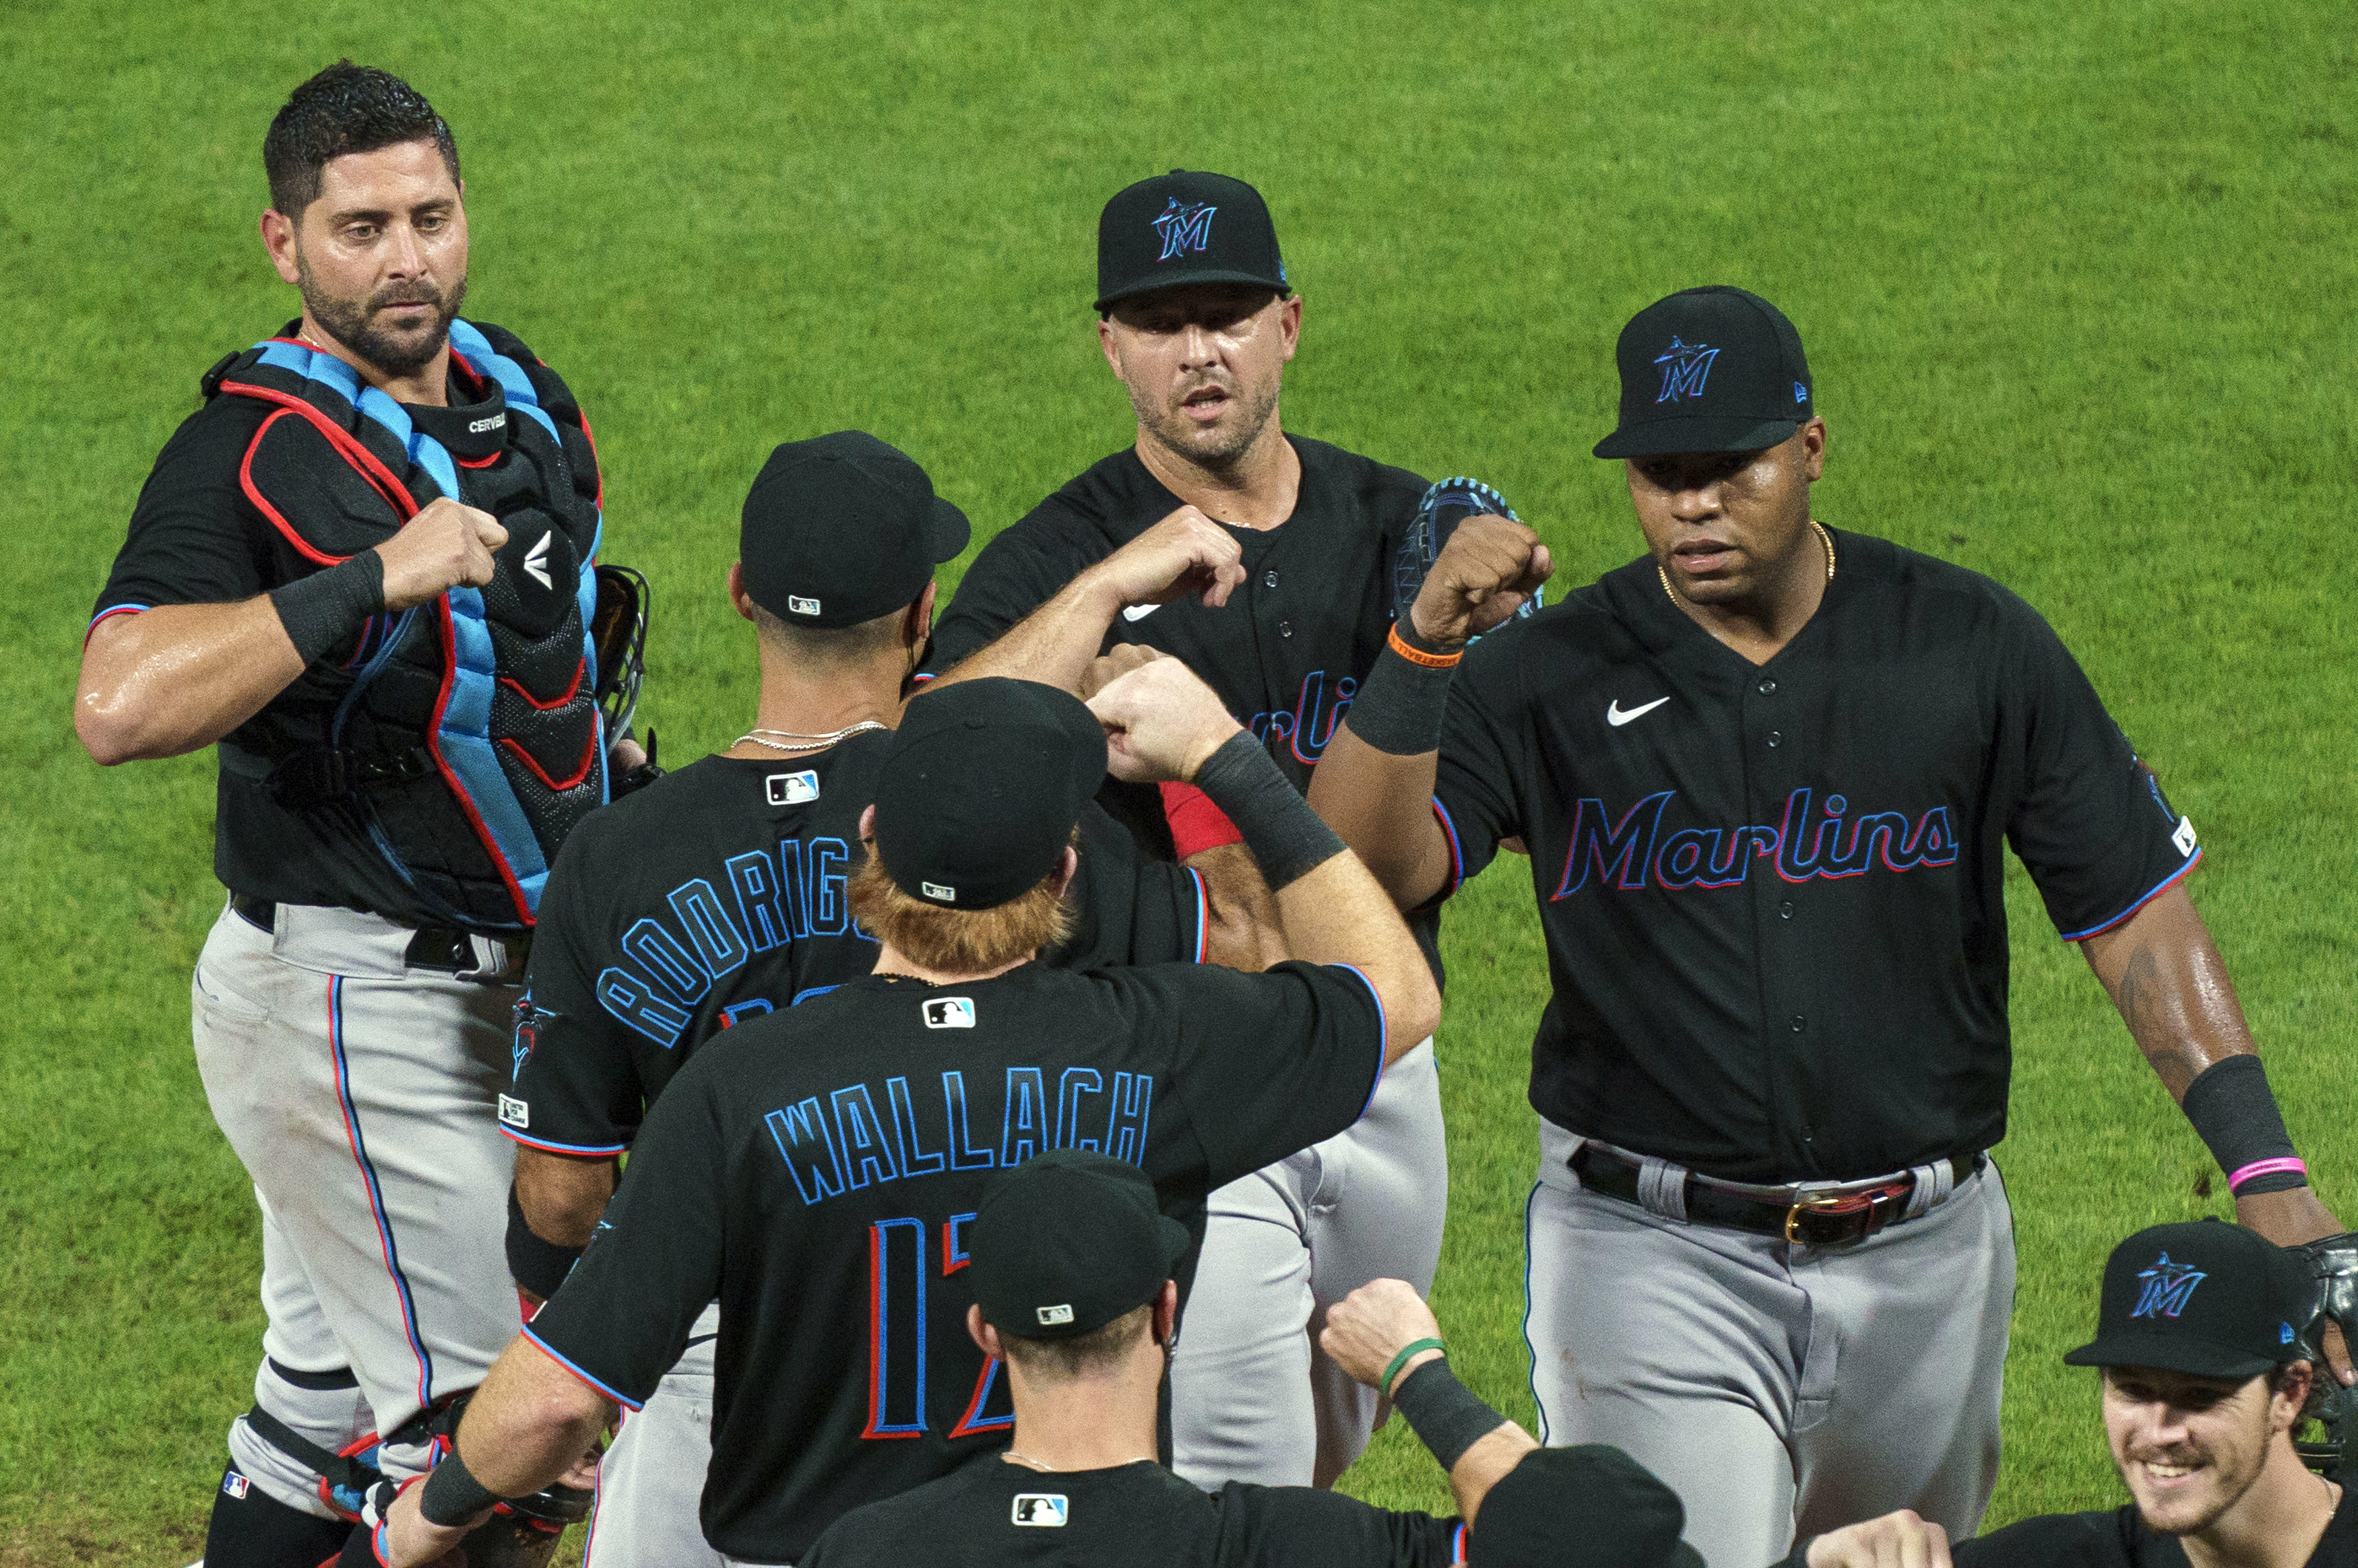 Miami Marlins' Jesus Aguilar, right, celebrates a 5-2 win with teammates following a baseball game against the Philadelphia Phillies in Philadelphia on July 24, 2020